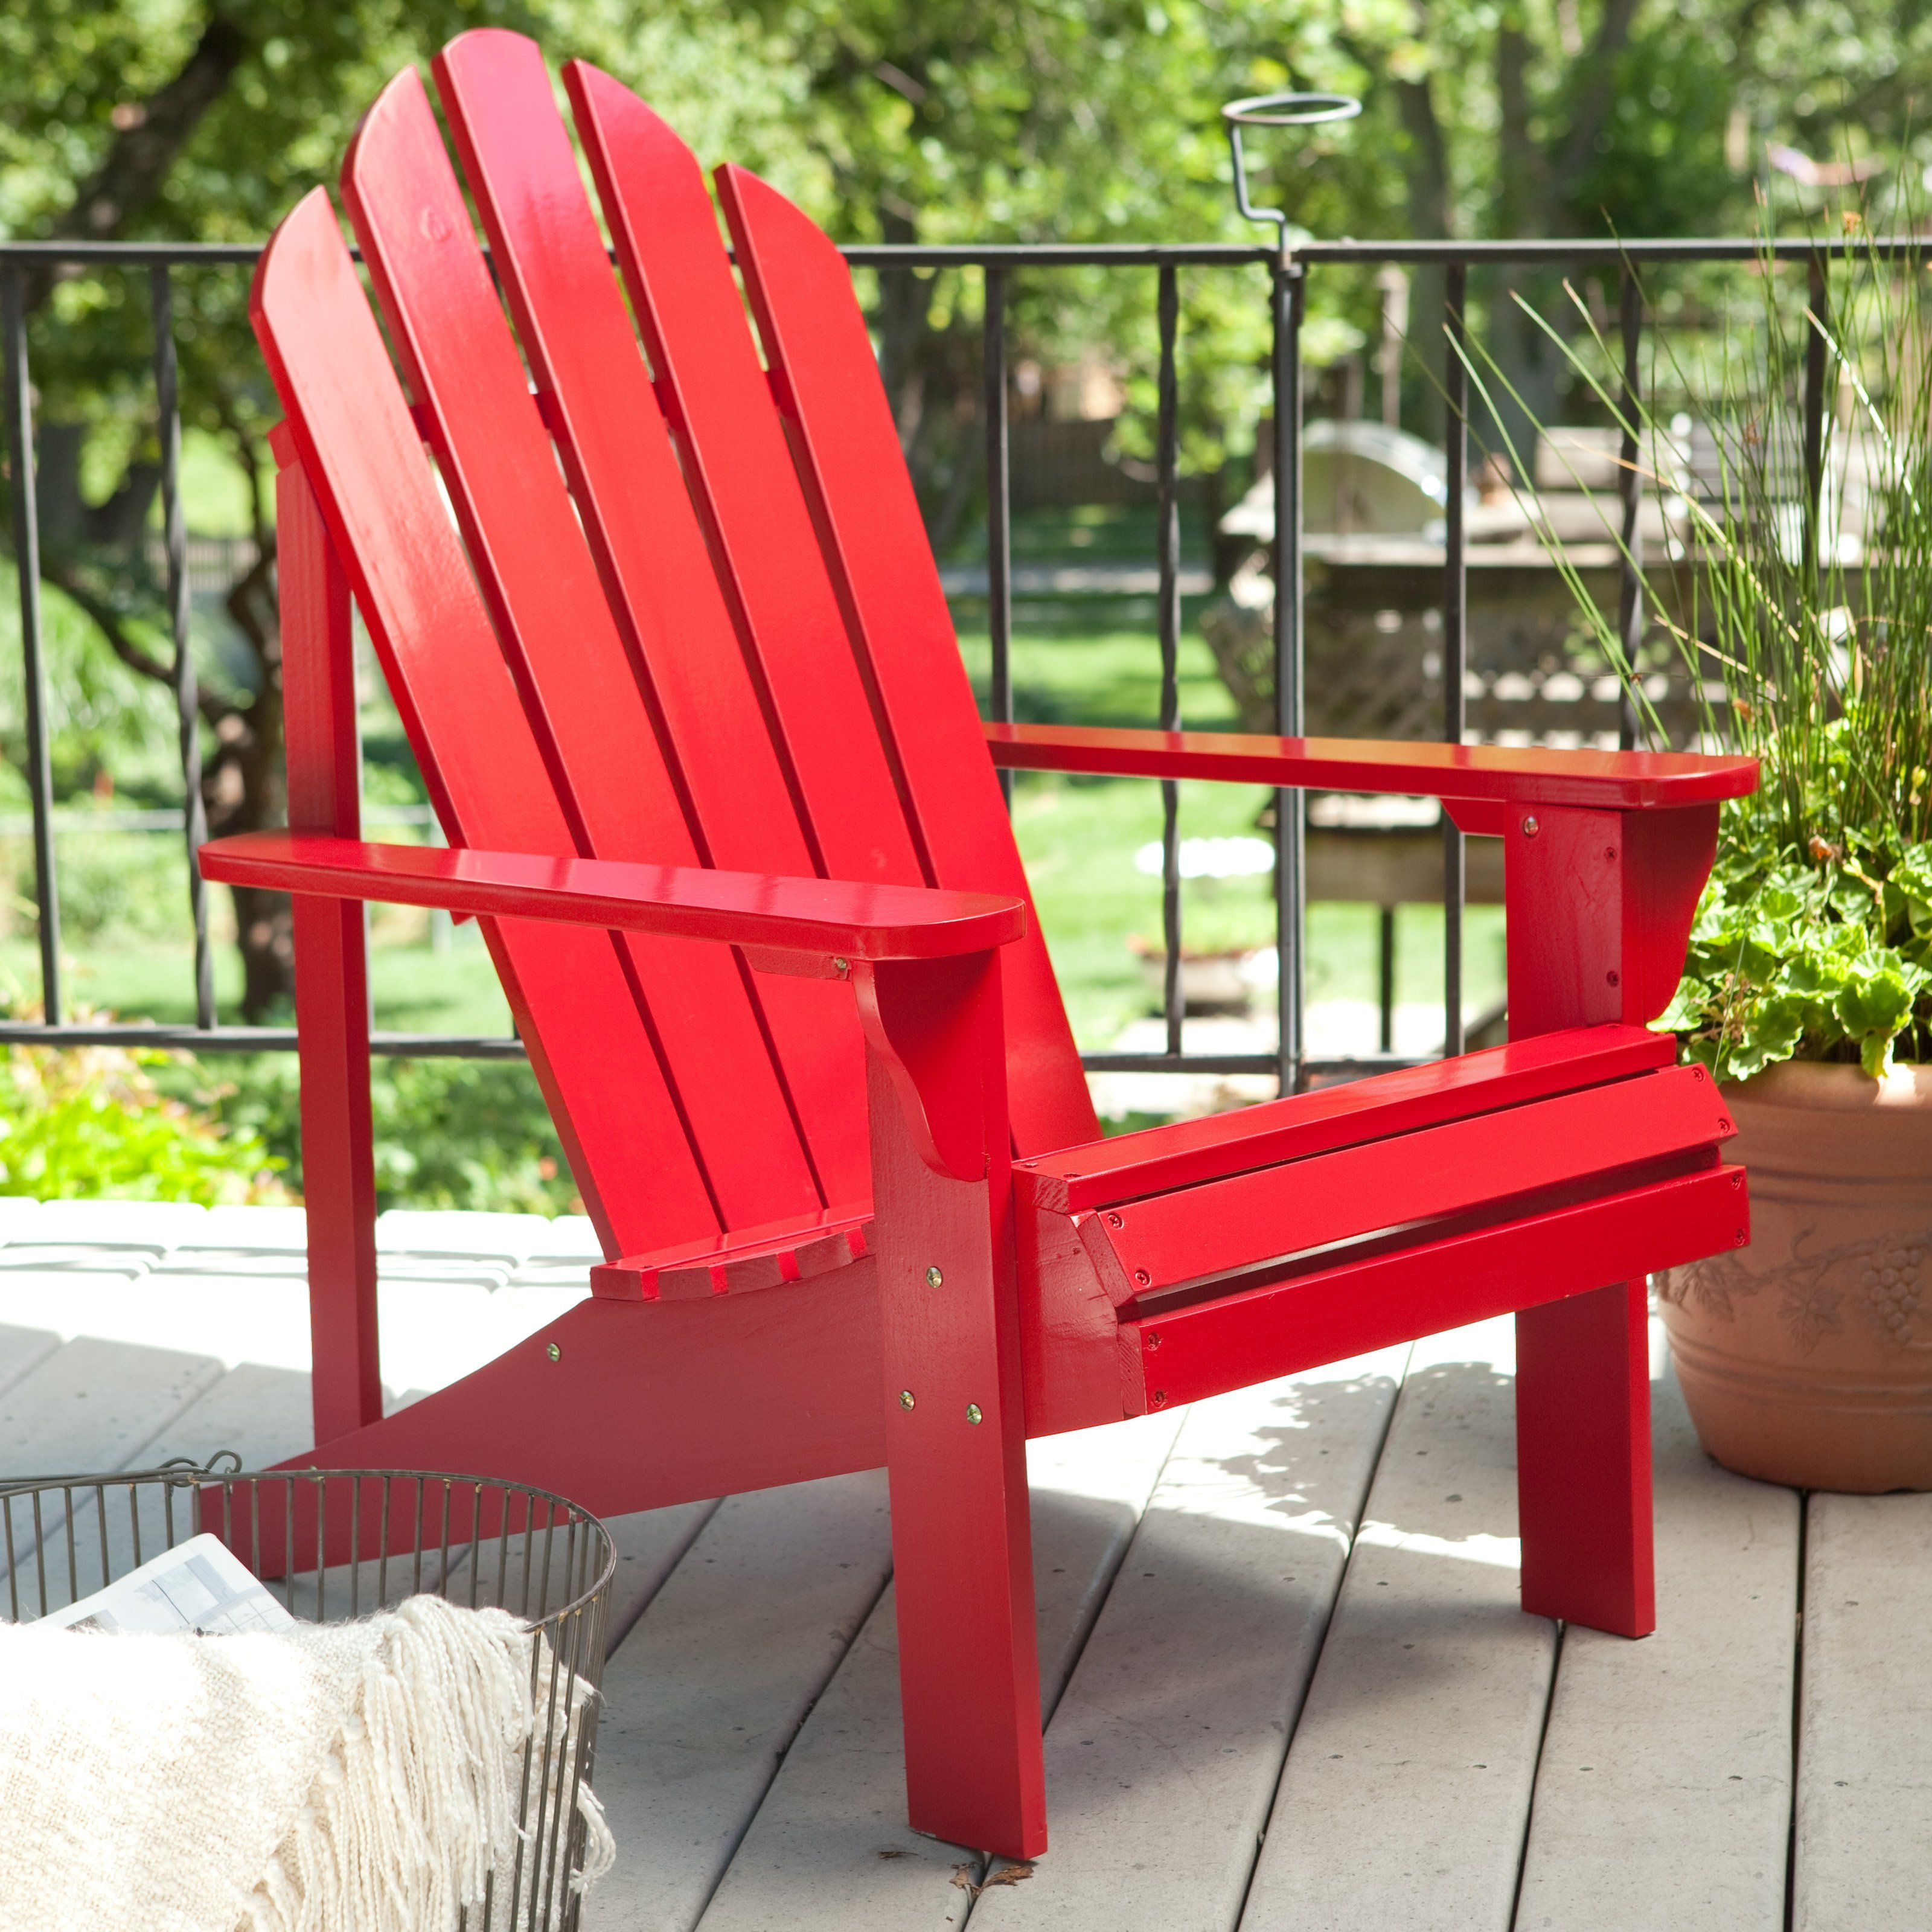 I Love Red Adirondack Chairs For The Home Red